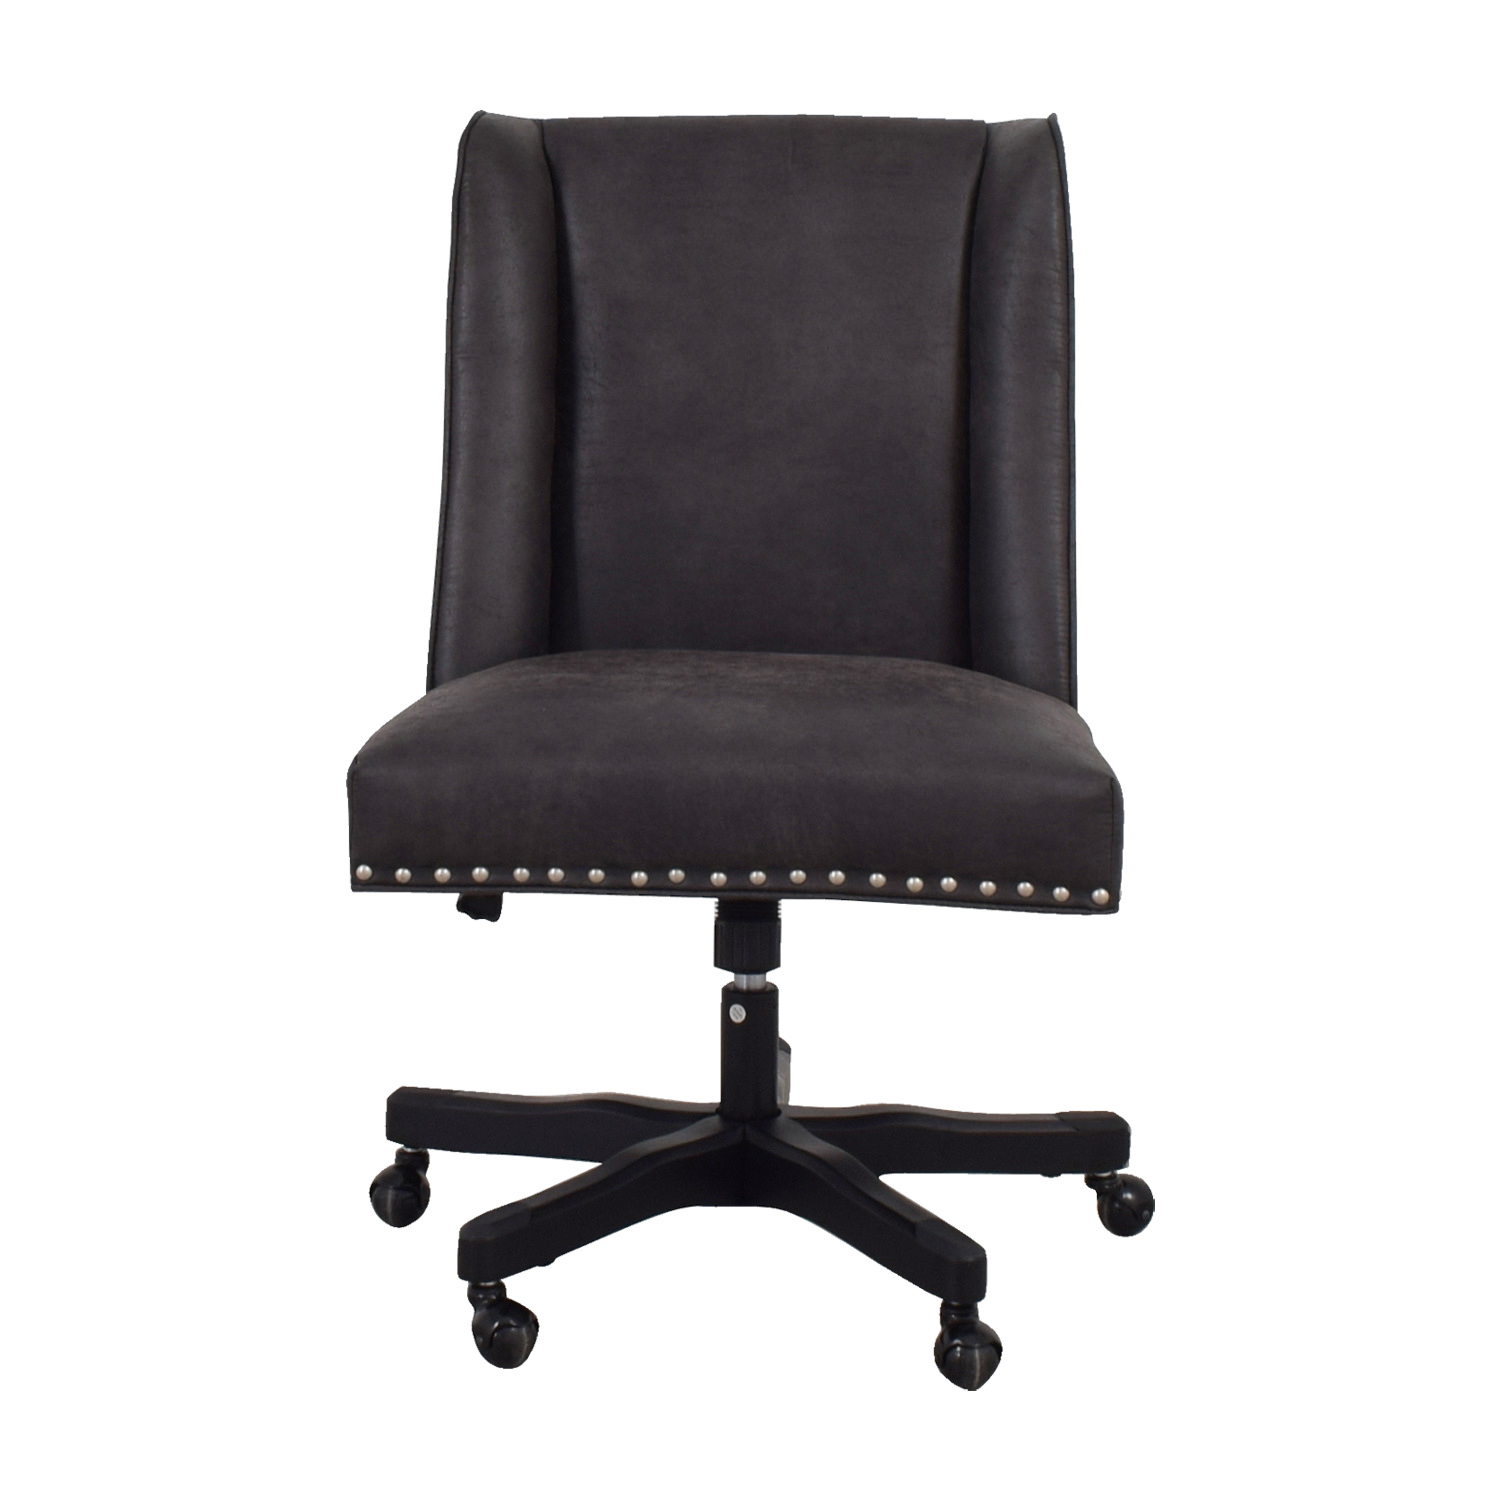 Wayfair Wayfair Grey Executive Chair nyc